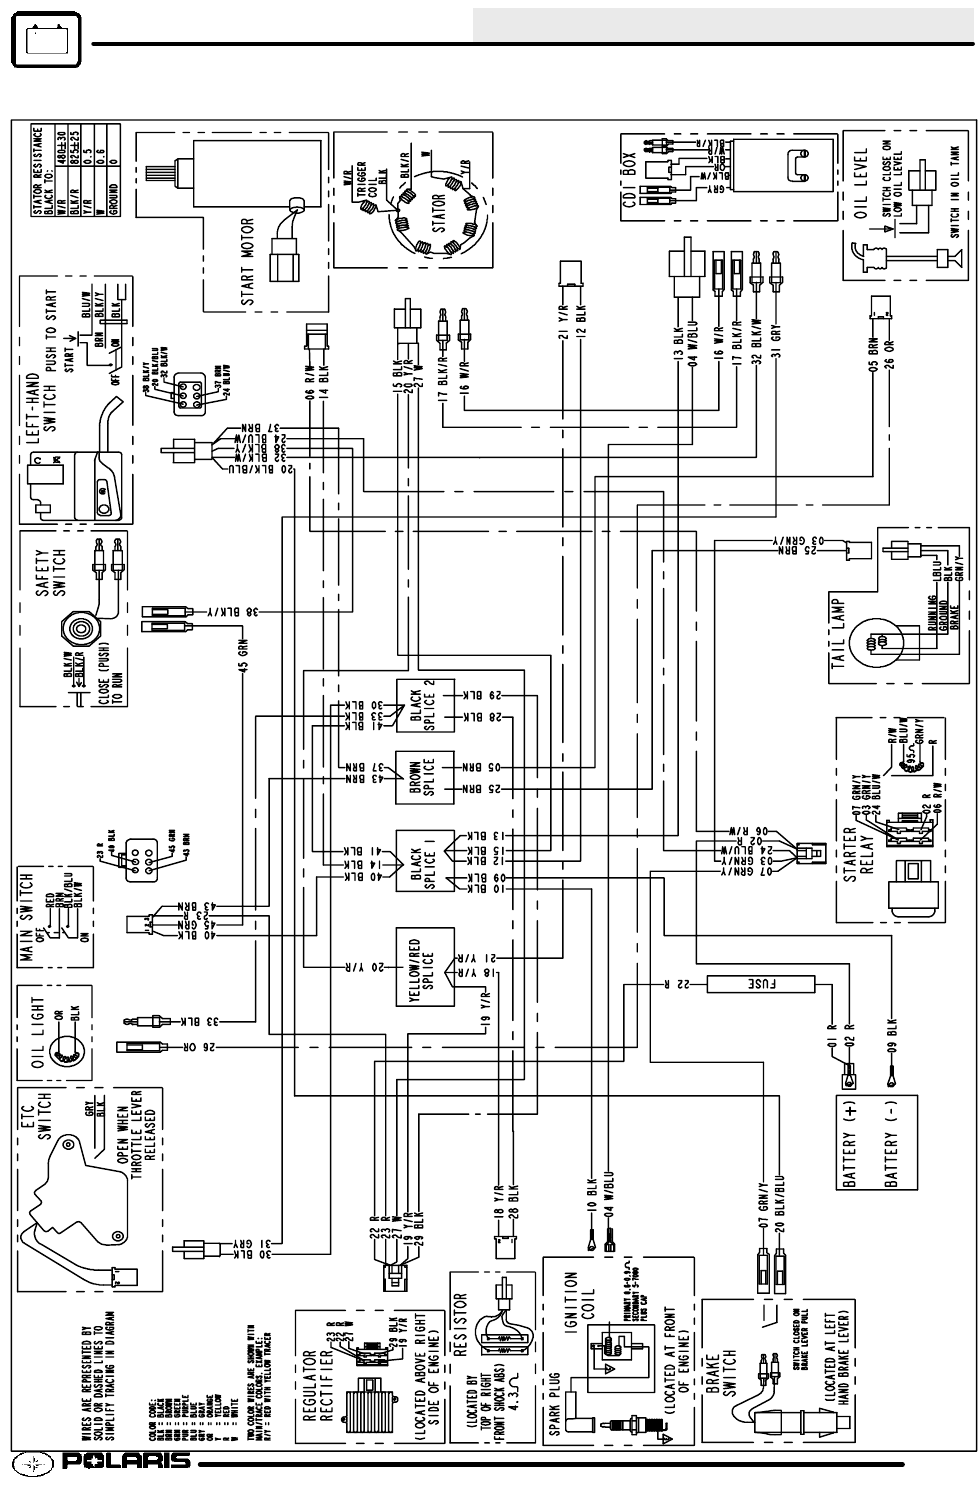 medium resolution of 2008 polaris wiring diagram wiring diagram completed2008 polaris wiring diagram just wiring diagram 2008 polaris rzr